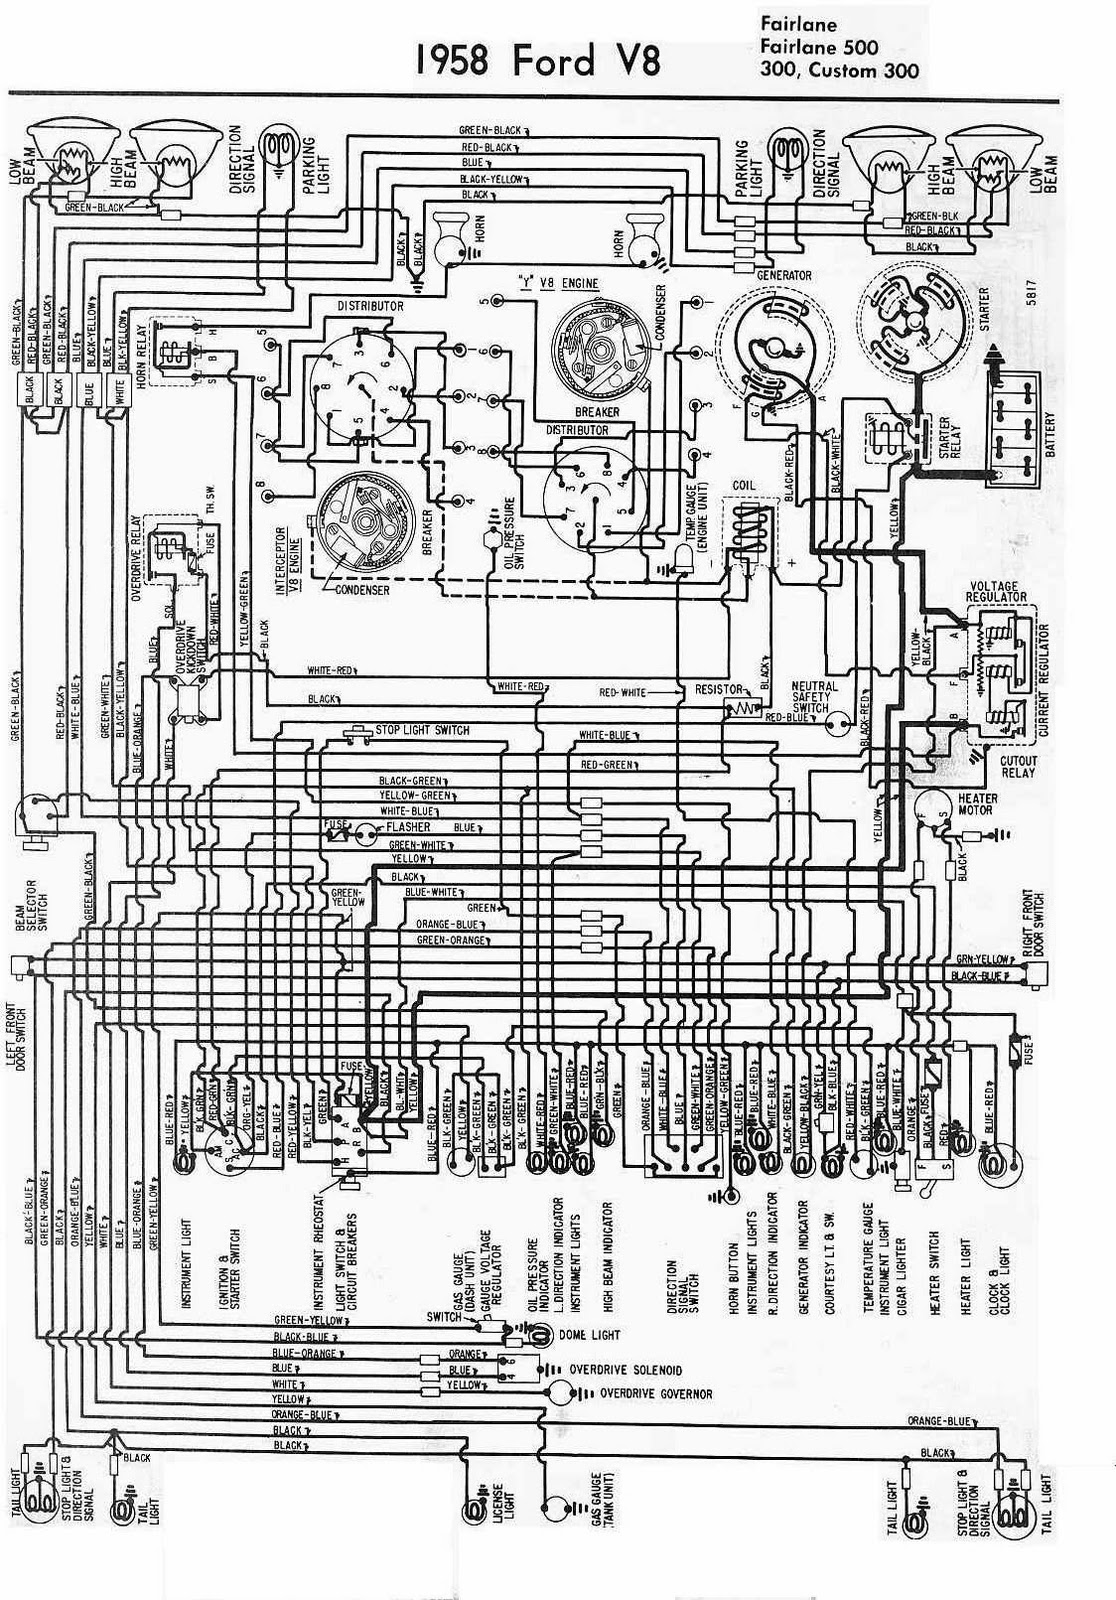 Modern Ford F600 Wiring Diagram Mold - Electrical and Wiring Diagram on 62 pontiac bonneville wiring diagram, 62 ford thunderbird parts, 62 cadillac wiring diagram, 62 lincoln wiring diagram, 62 chevy impala wiring diagram,